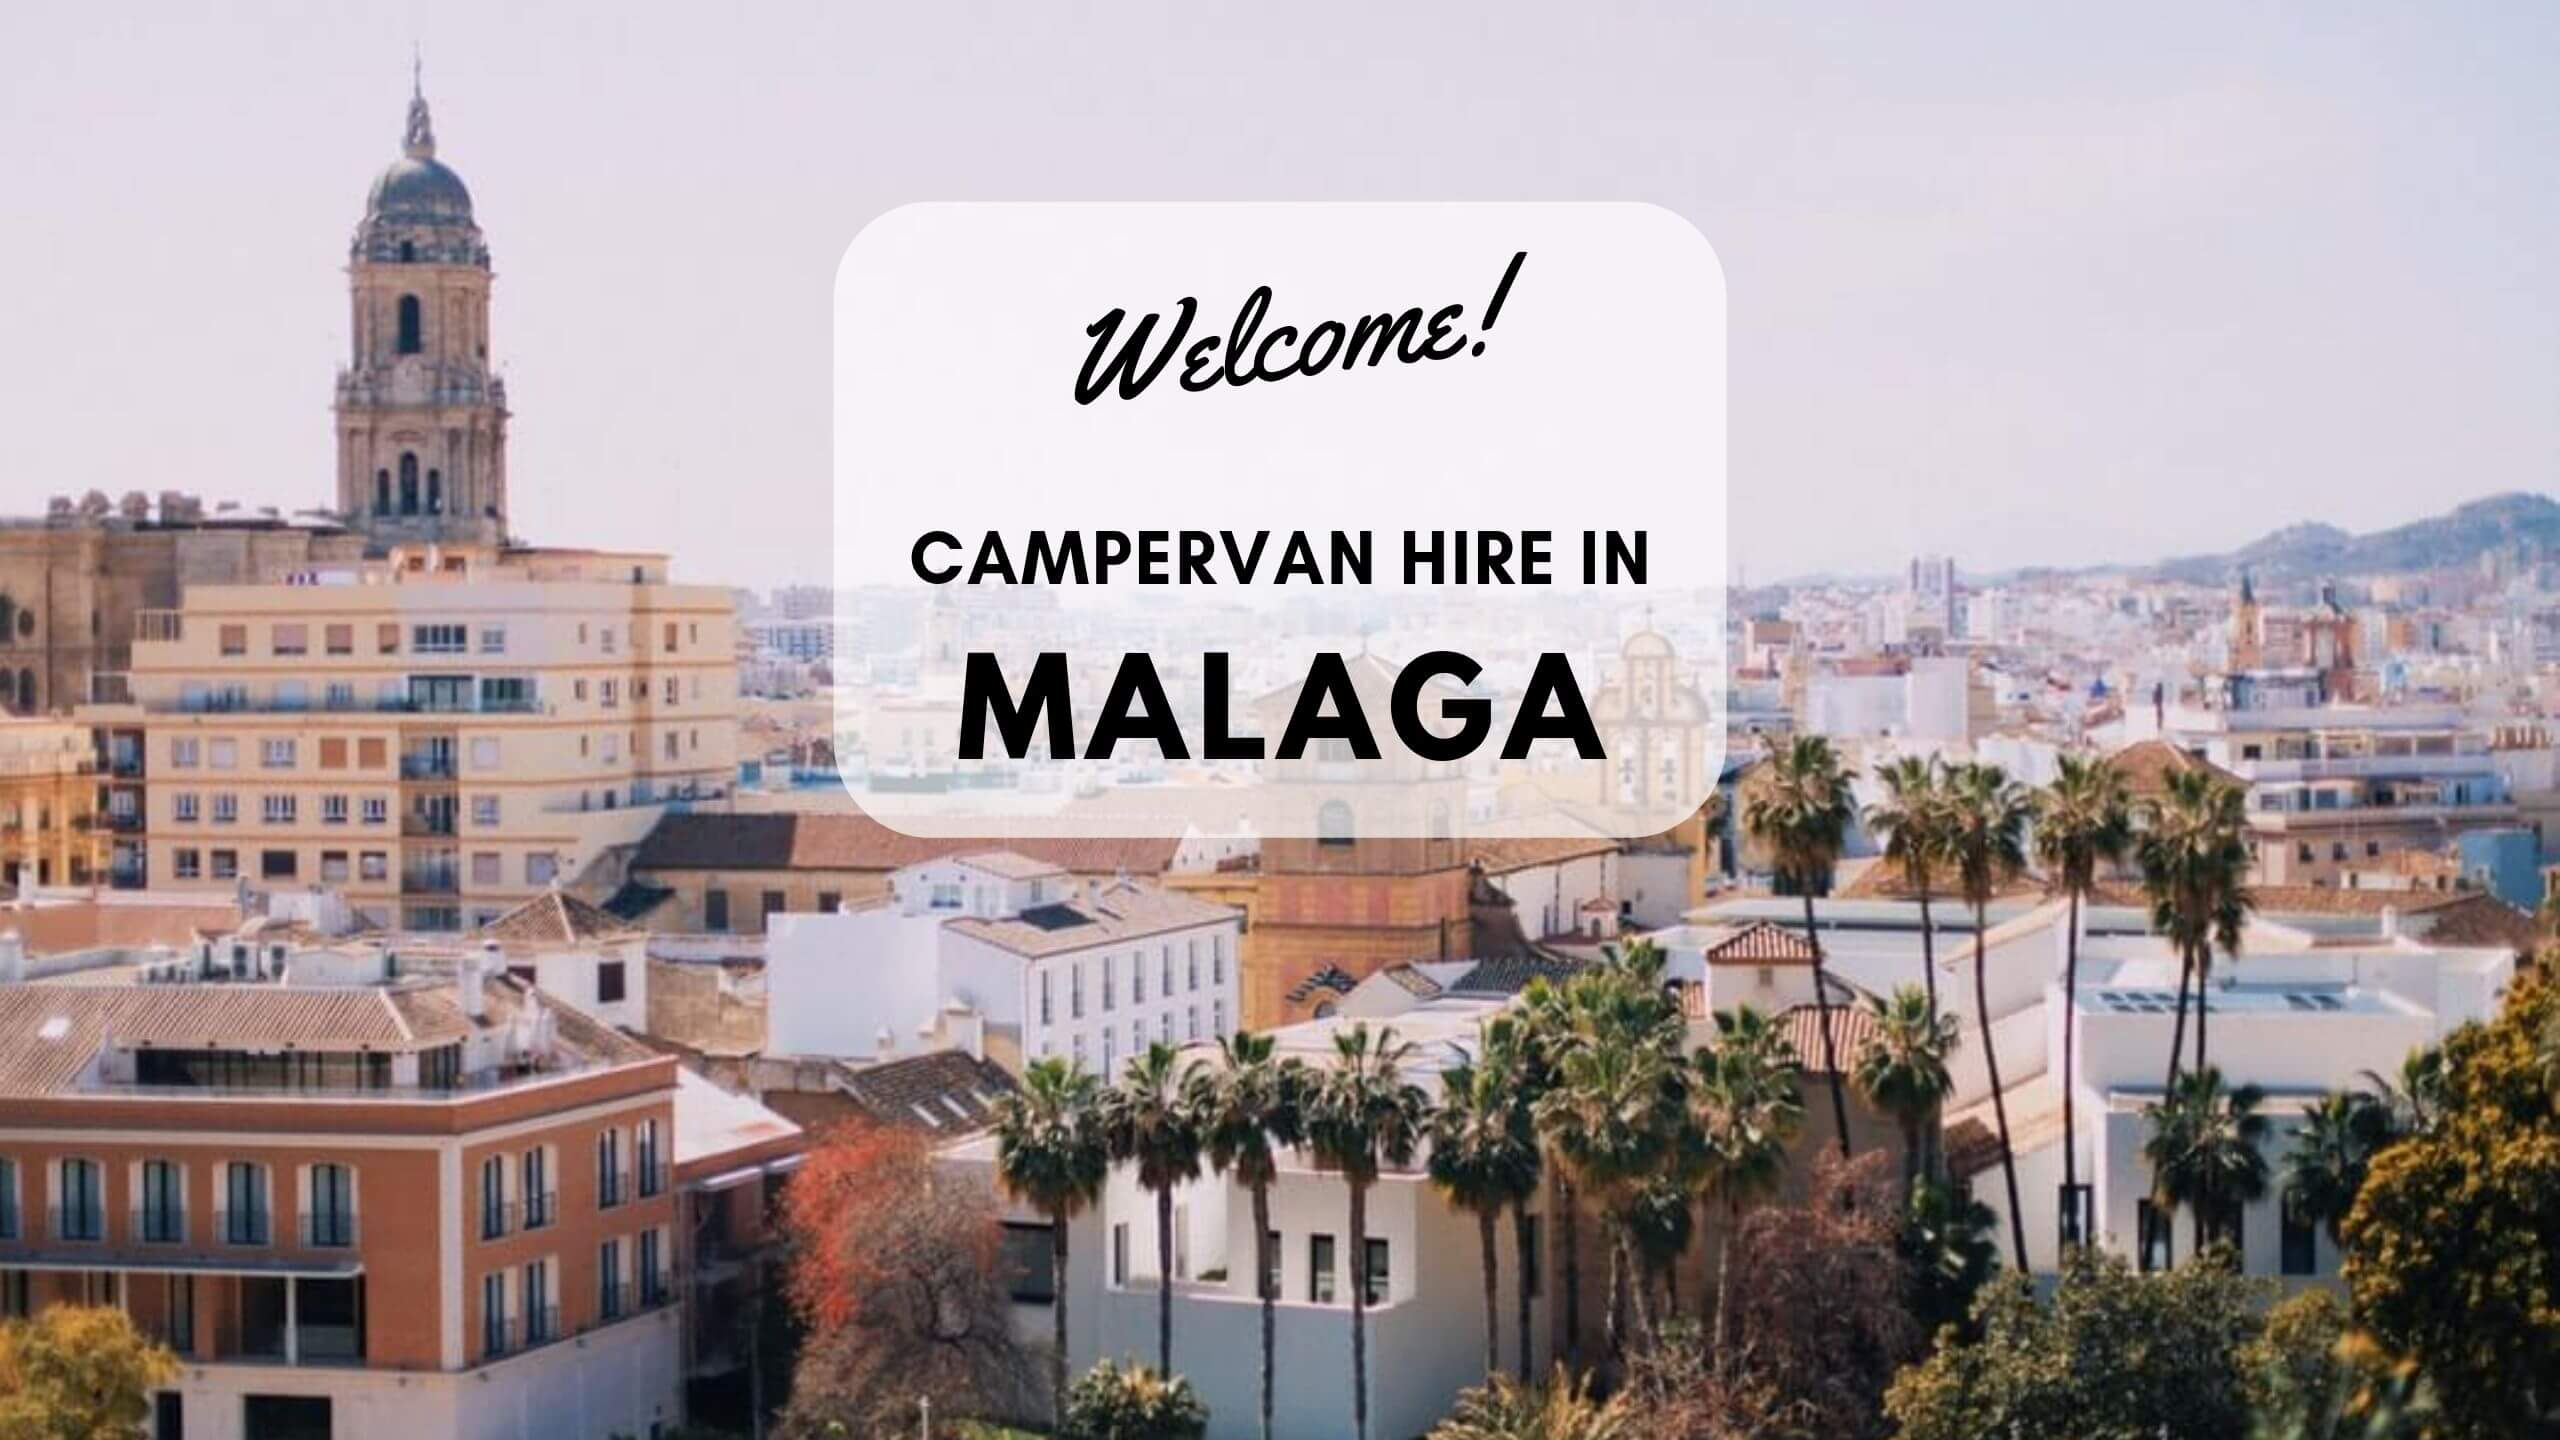 Campervan Hire Malaga – Campervan trip is the best way to explore Andalusia